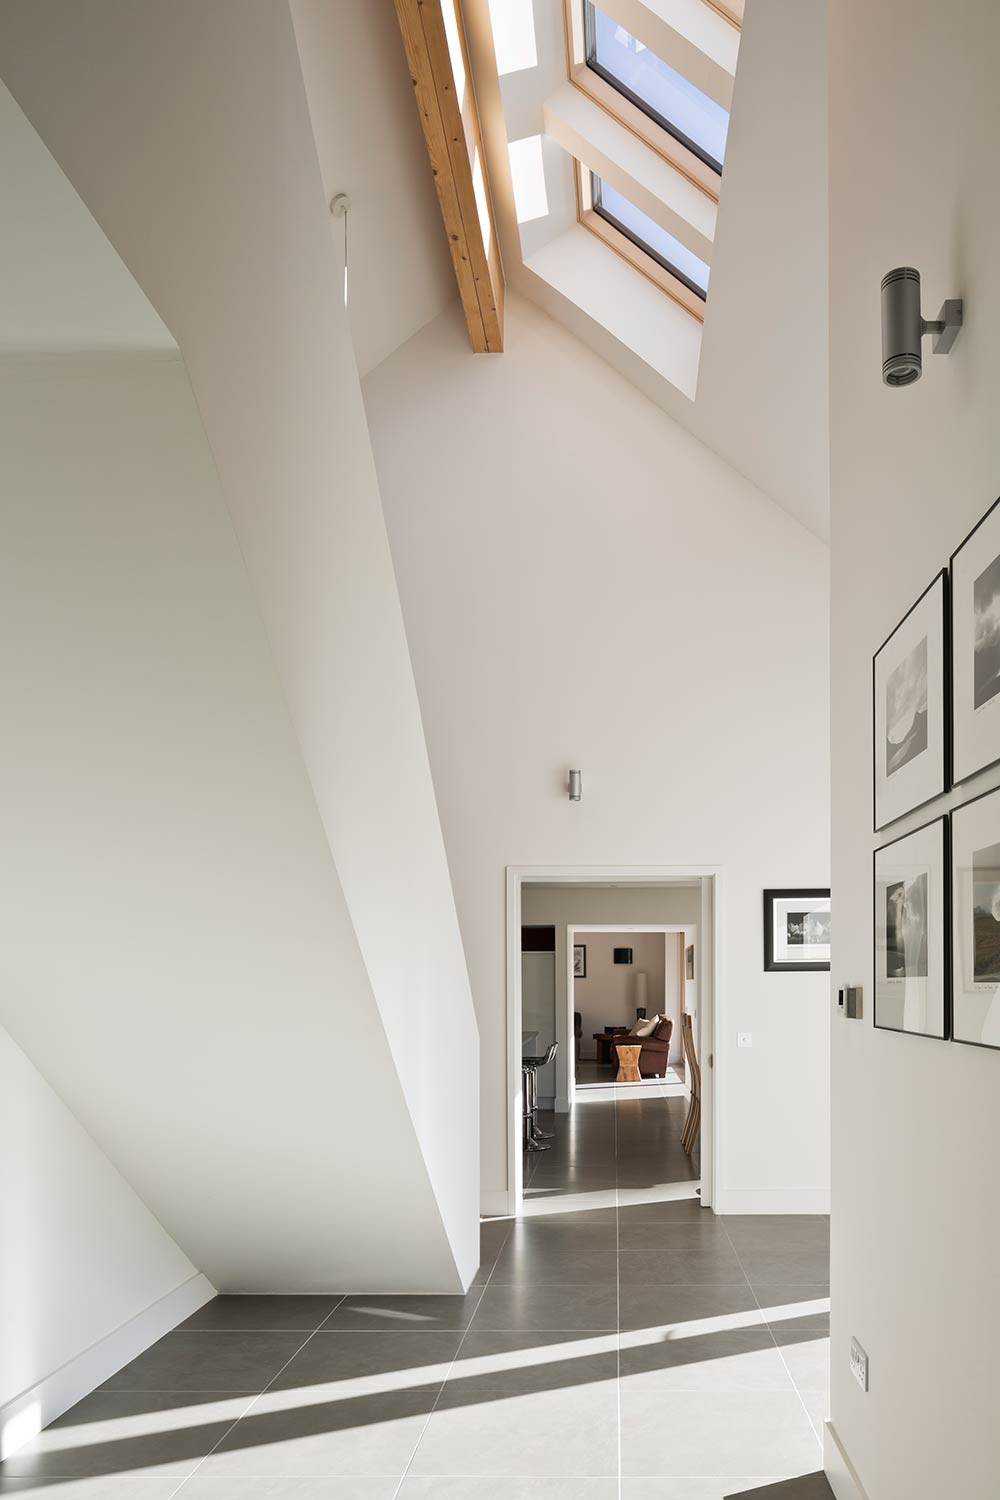 Simple And Stunning Highlands Passive House Merges Old New Project Was About The Building A 2 Room With Parallel Circuit